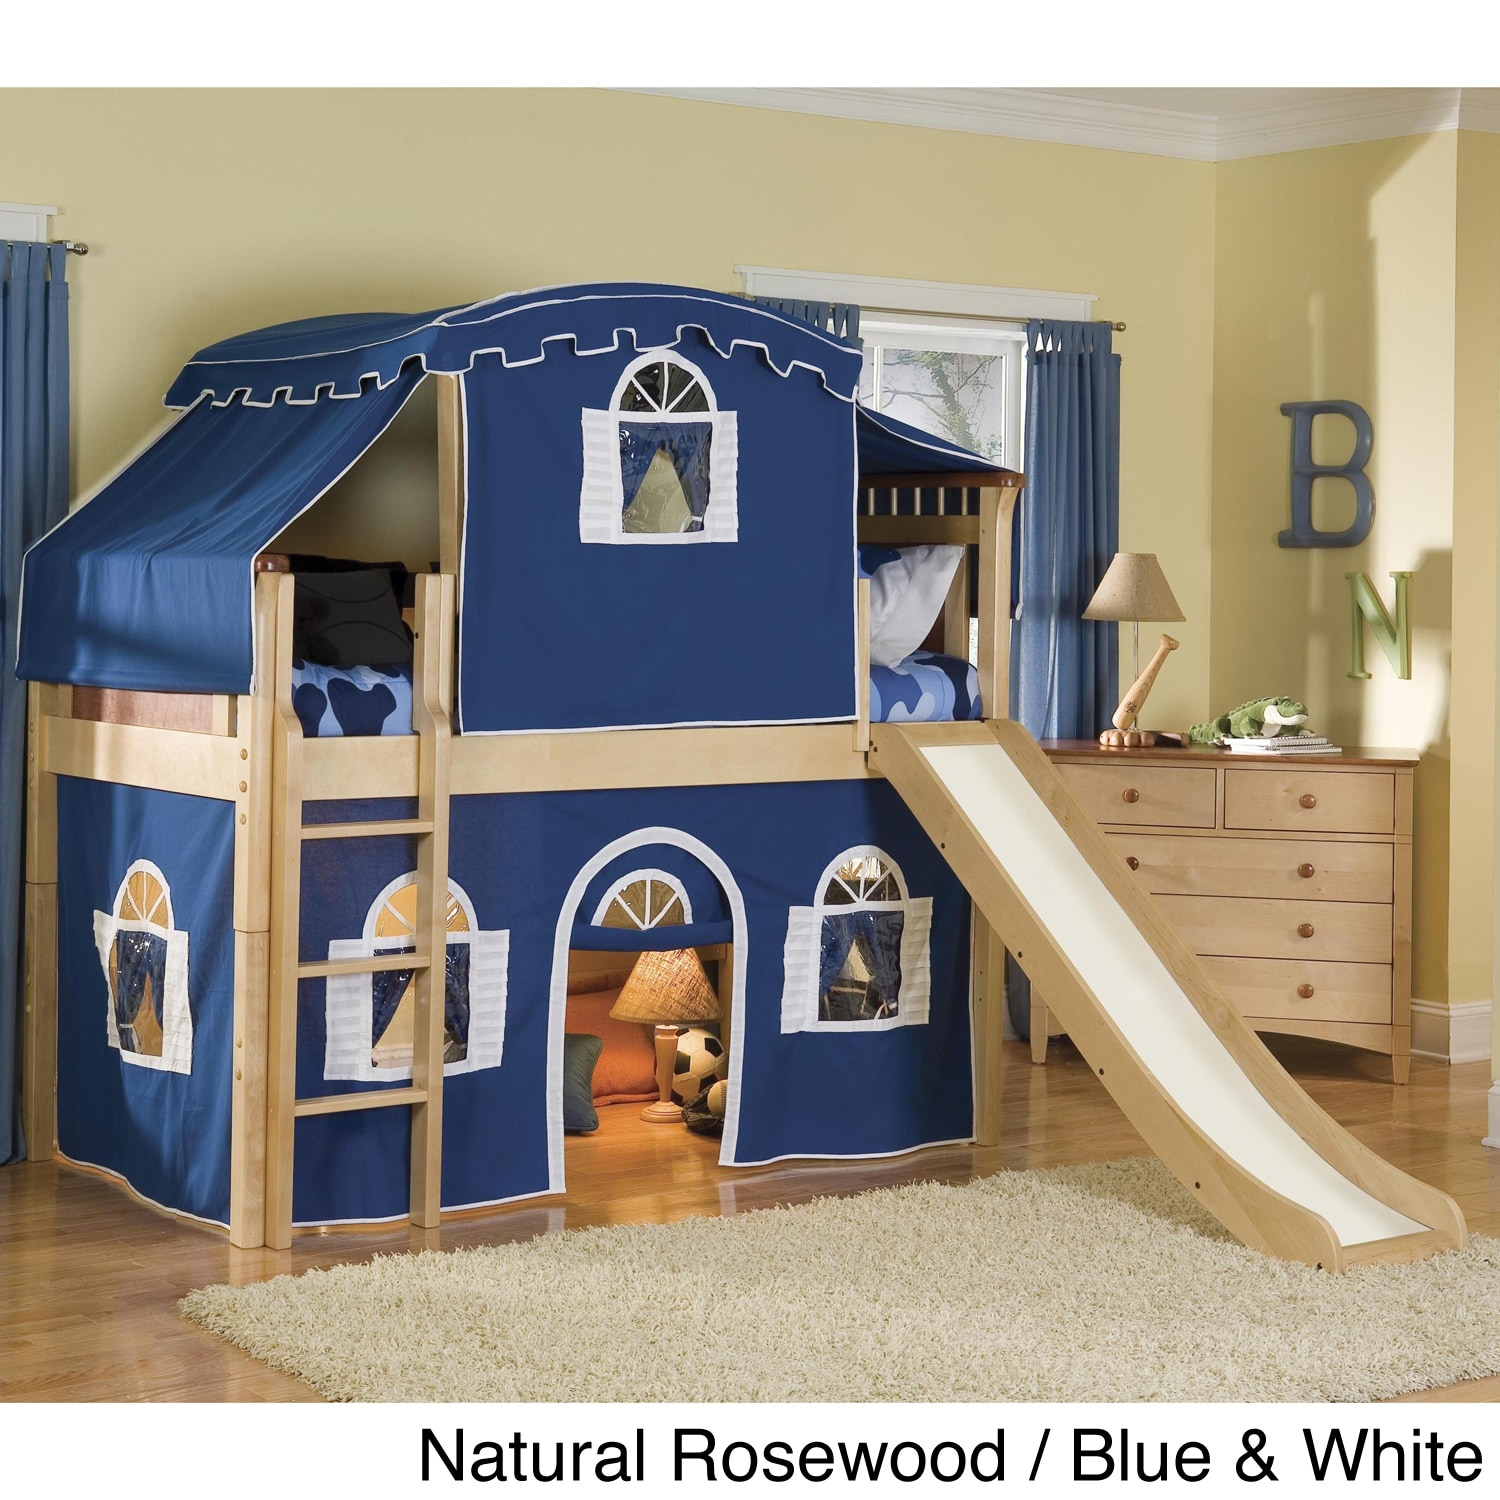 boys kids tented bed with slide bedroom beds twin fun sturdy new tent curtian ebay. Black Bedroom Furniture Sets. Home Design Ideas